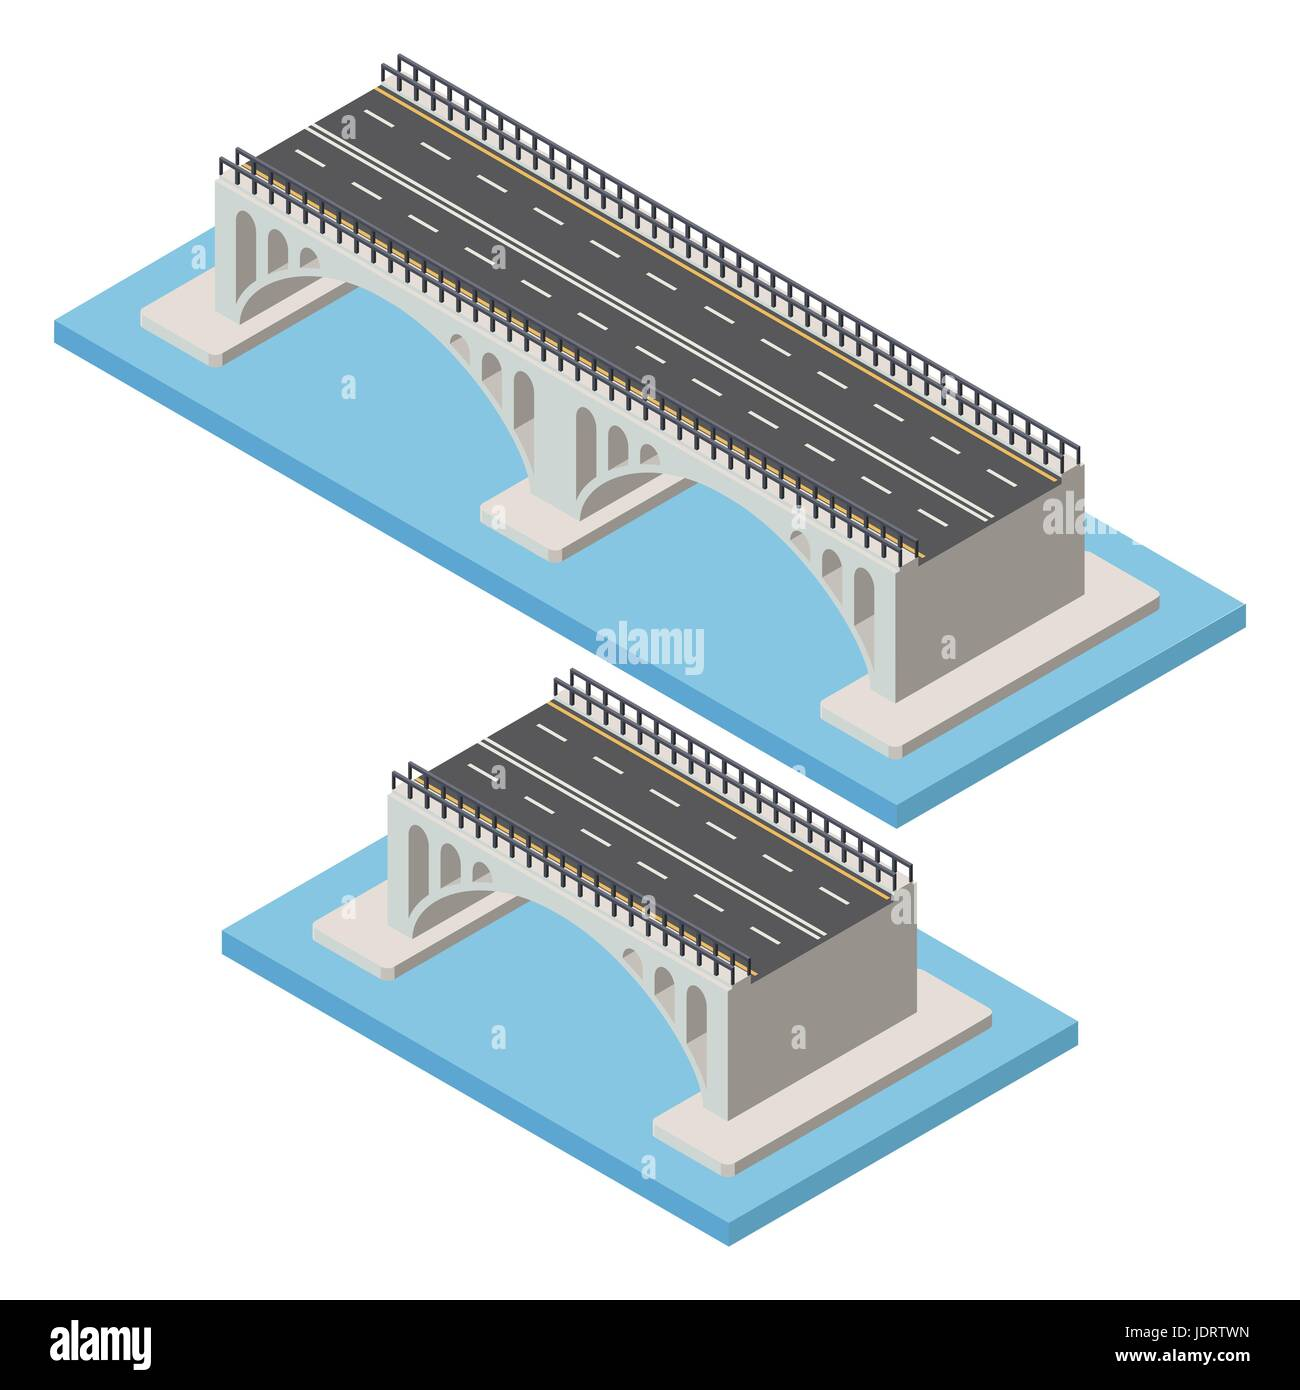 Vector isometric bridge. Transport  infrastructure 3d element representing low poly structure for city map creation. Stock Vector